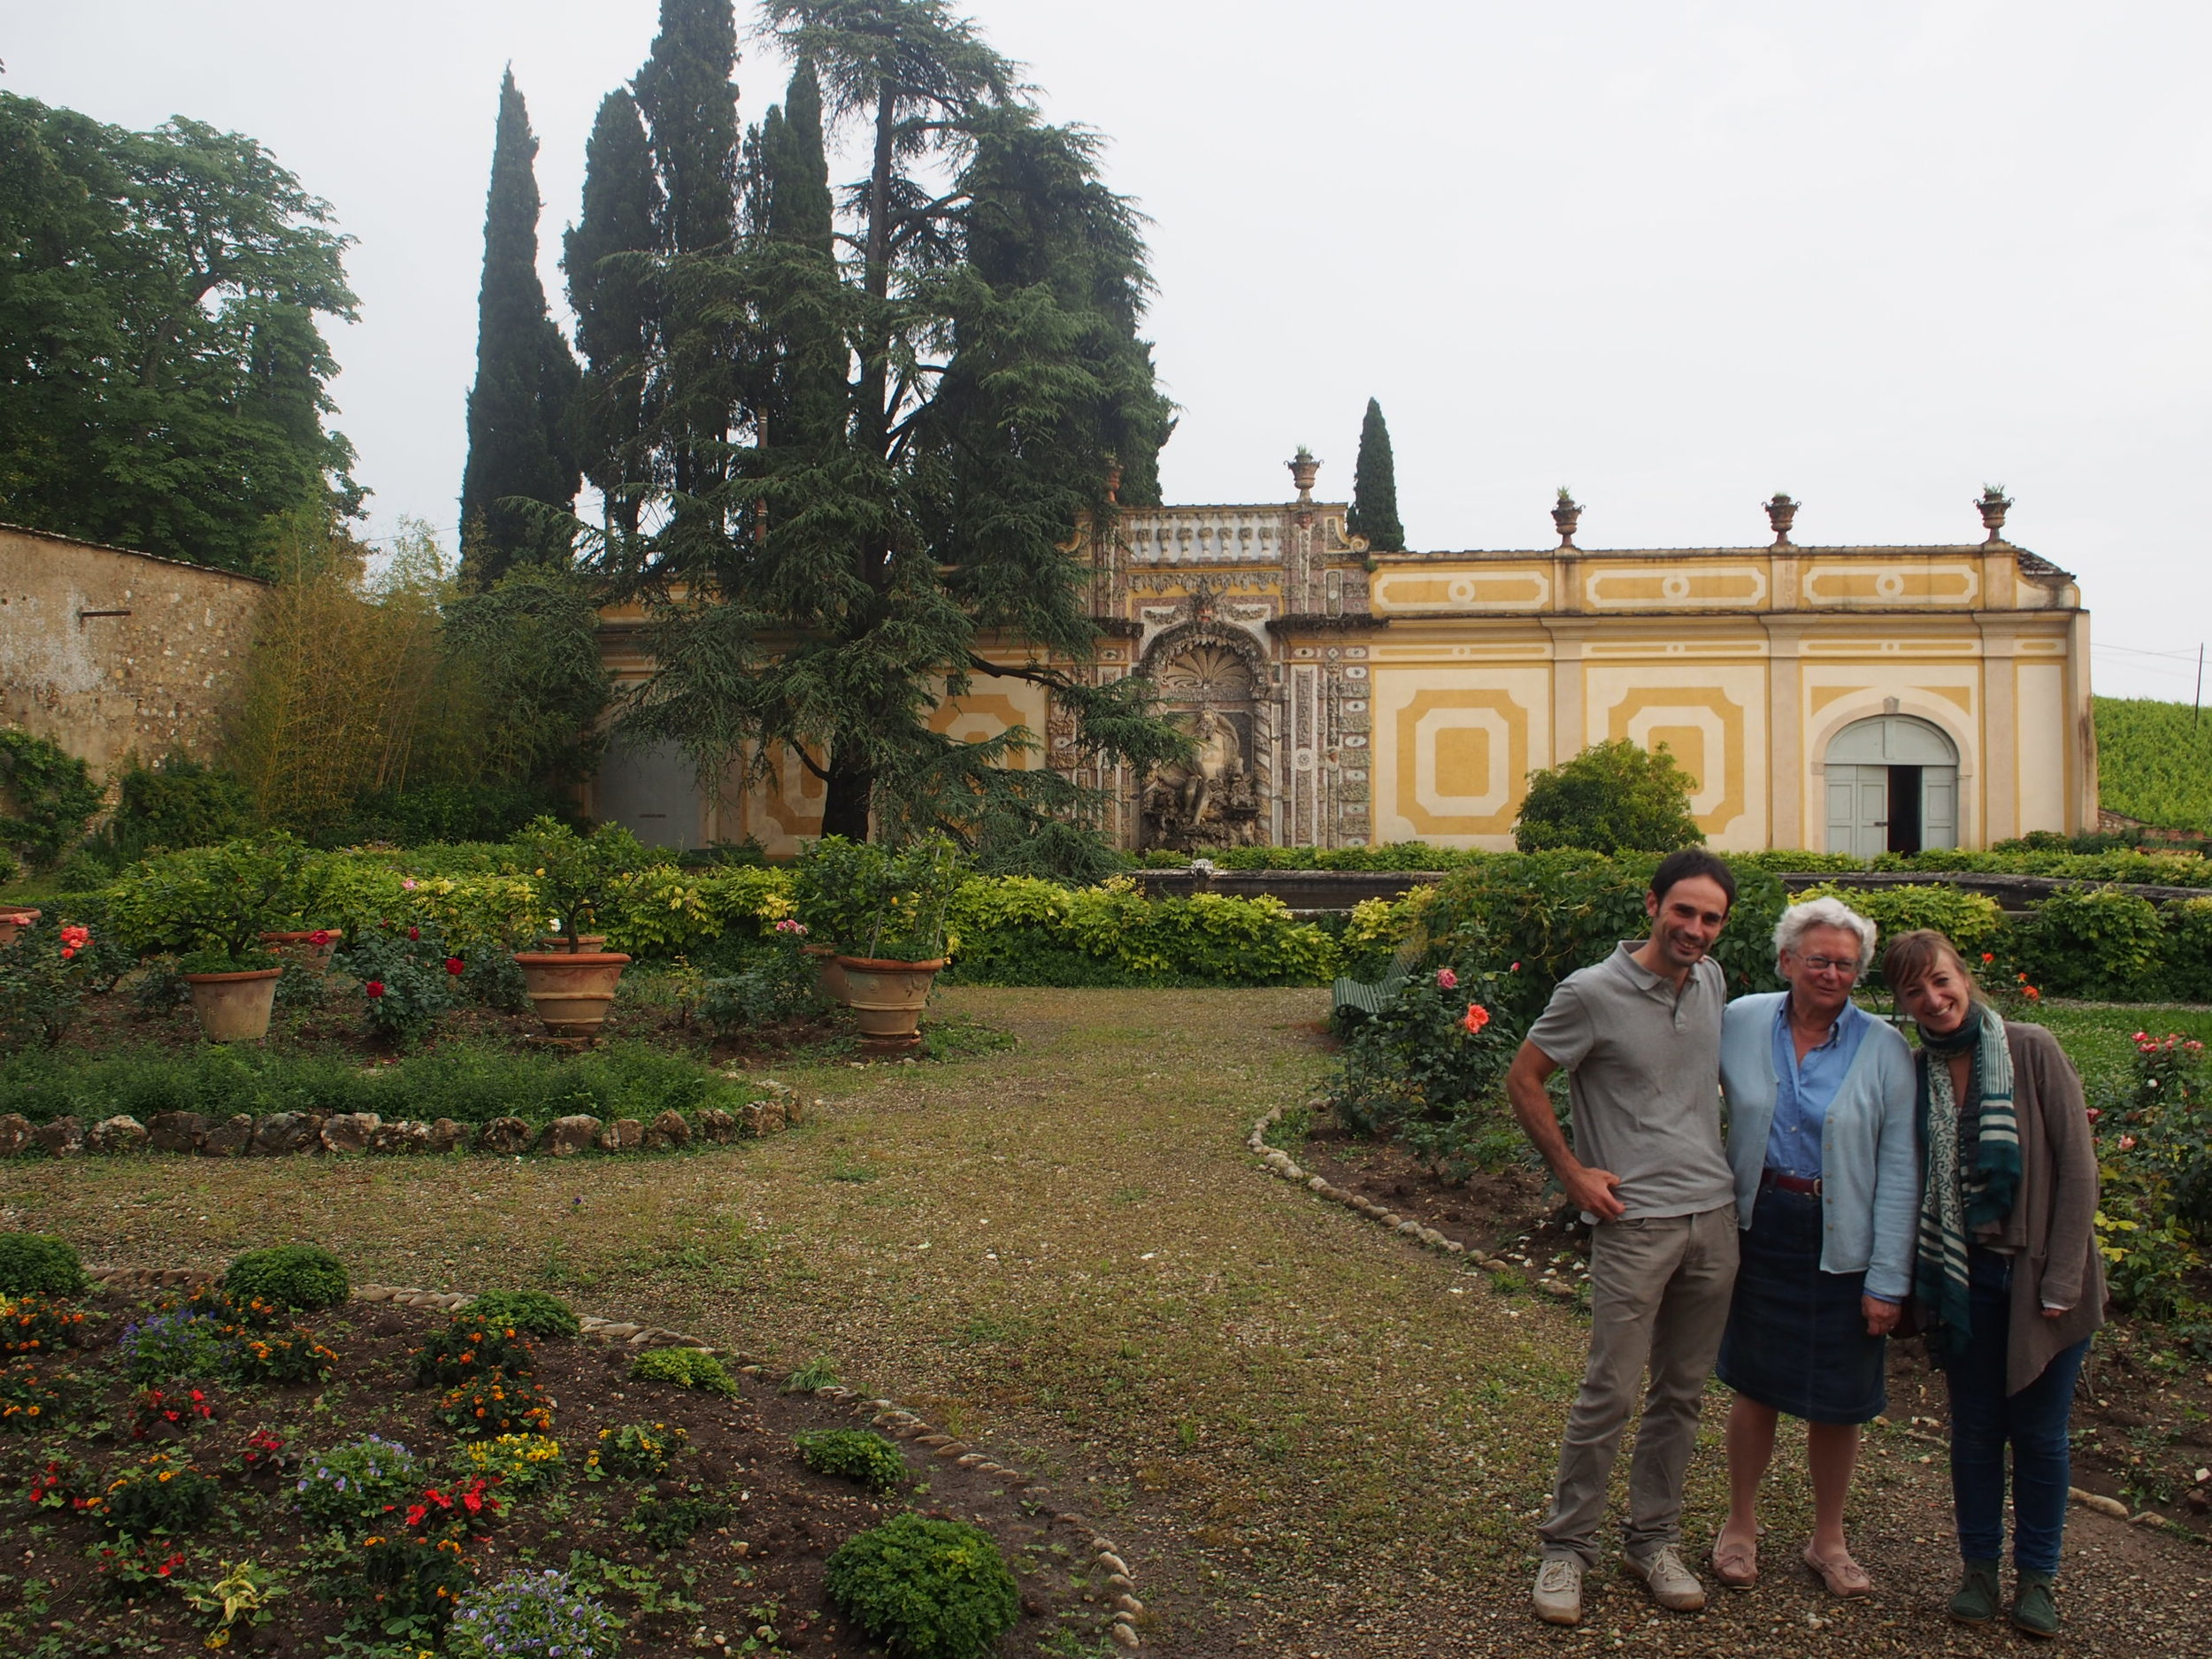 (Left to Right) Alessio, Anna and Arianna at the back garden of the Antinori family's Renaissance Villa Il Cigliano.